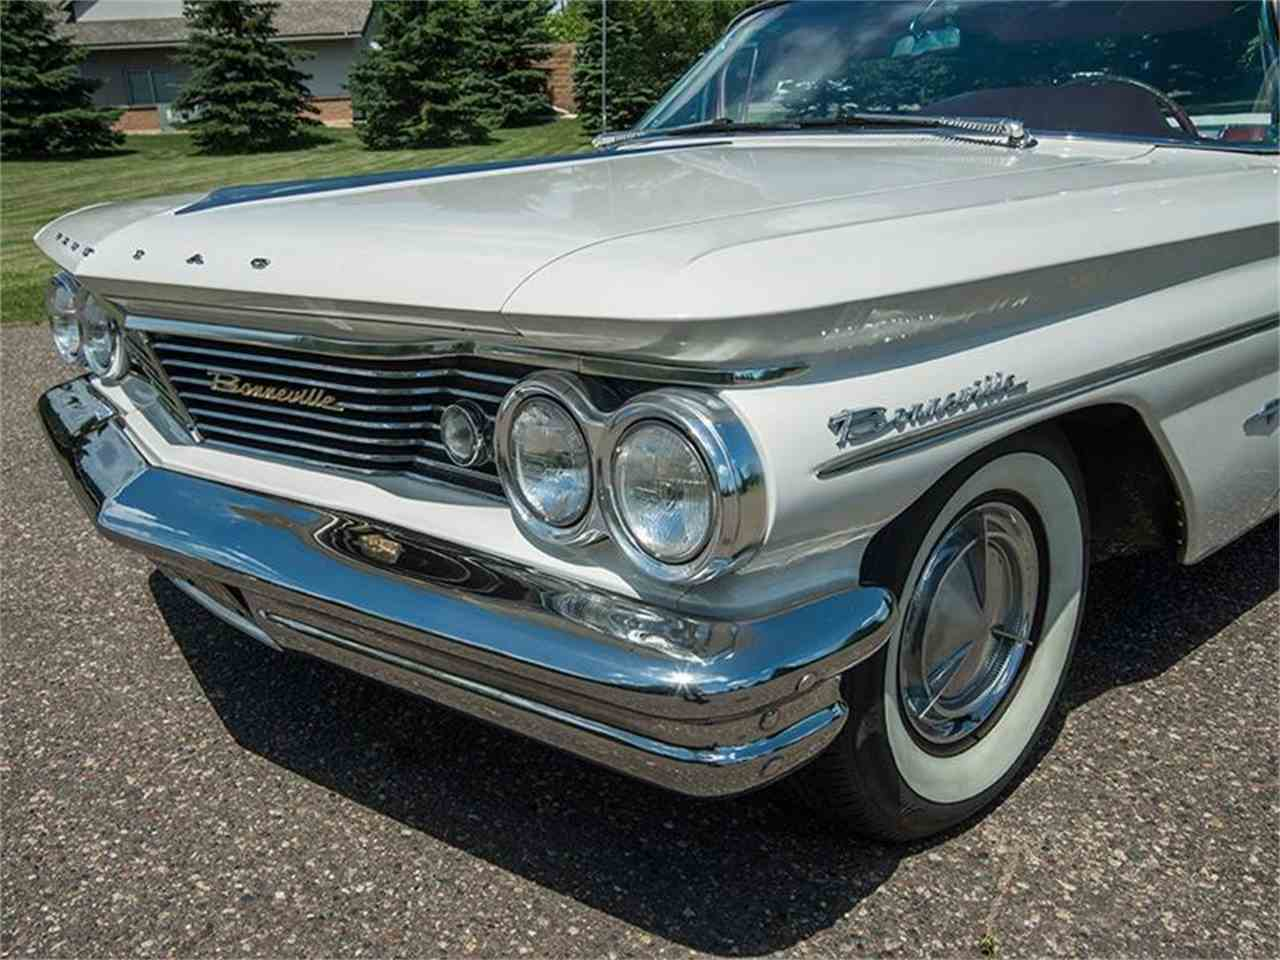 Large Picture of '60 Pontiac Bonneville - $54,950.00 Offered by Ellingson Motorcars - LF7P